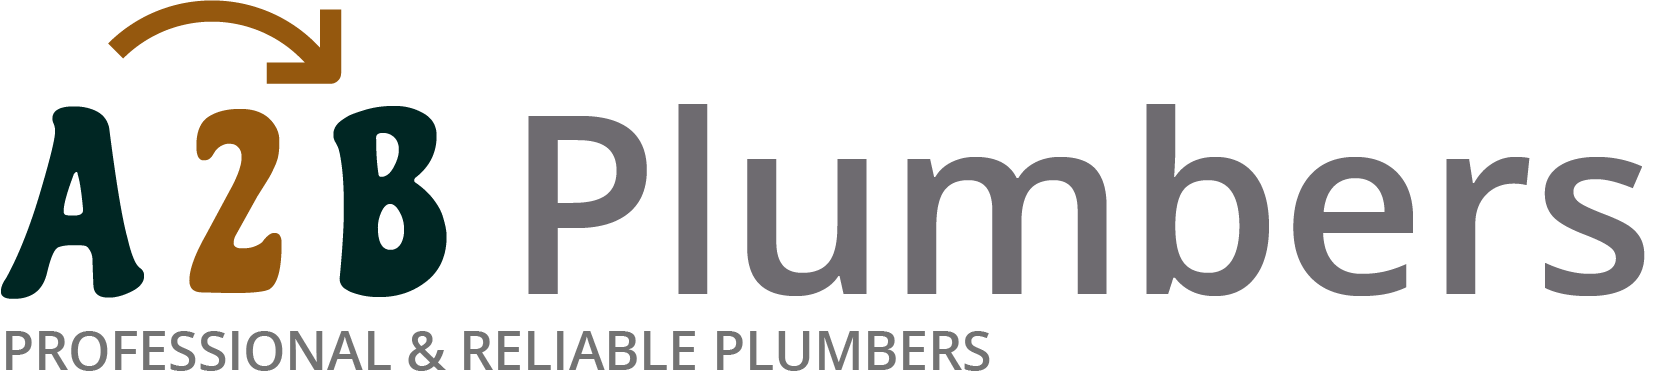 If you need a boiler installed, a radiator repaired or a leaking tap fixed, call us now - we provide services for properties in Burnham On Crouch and the local area.